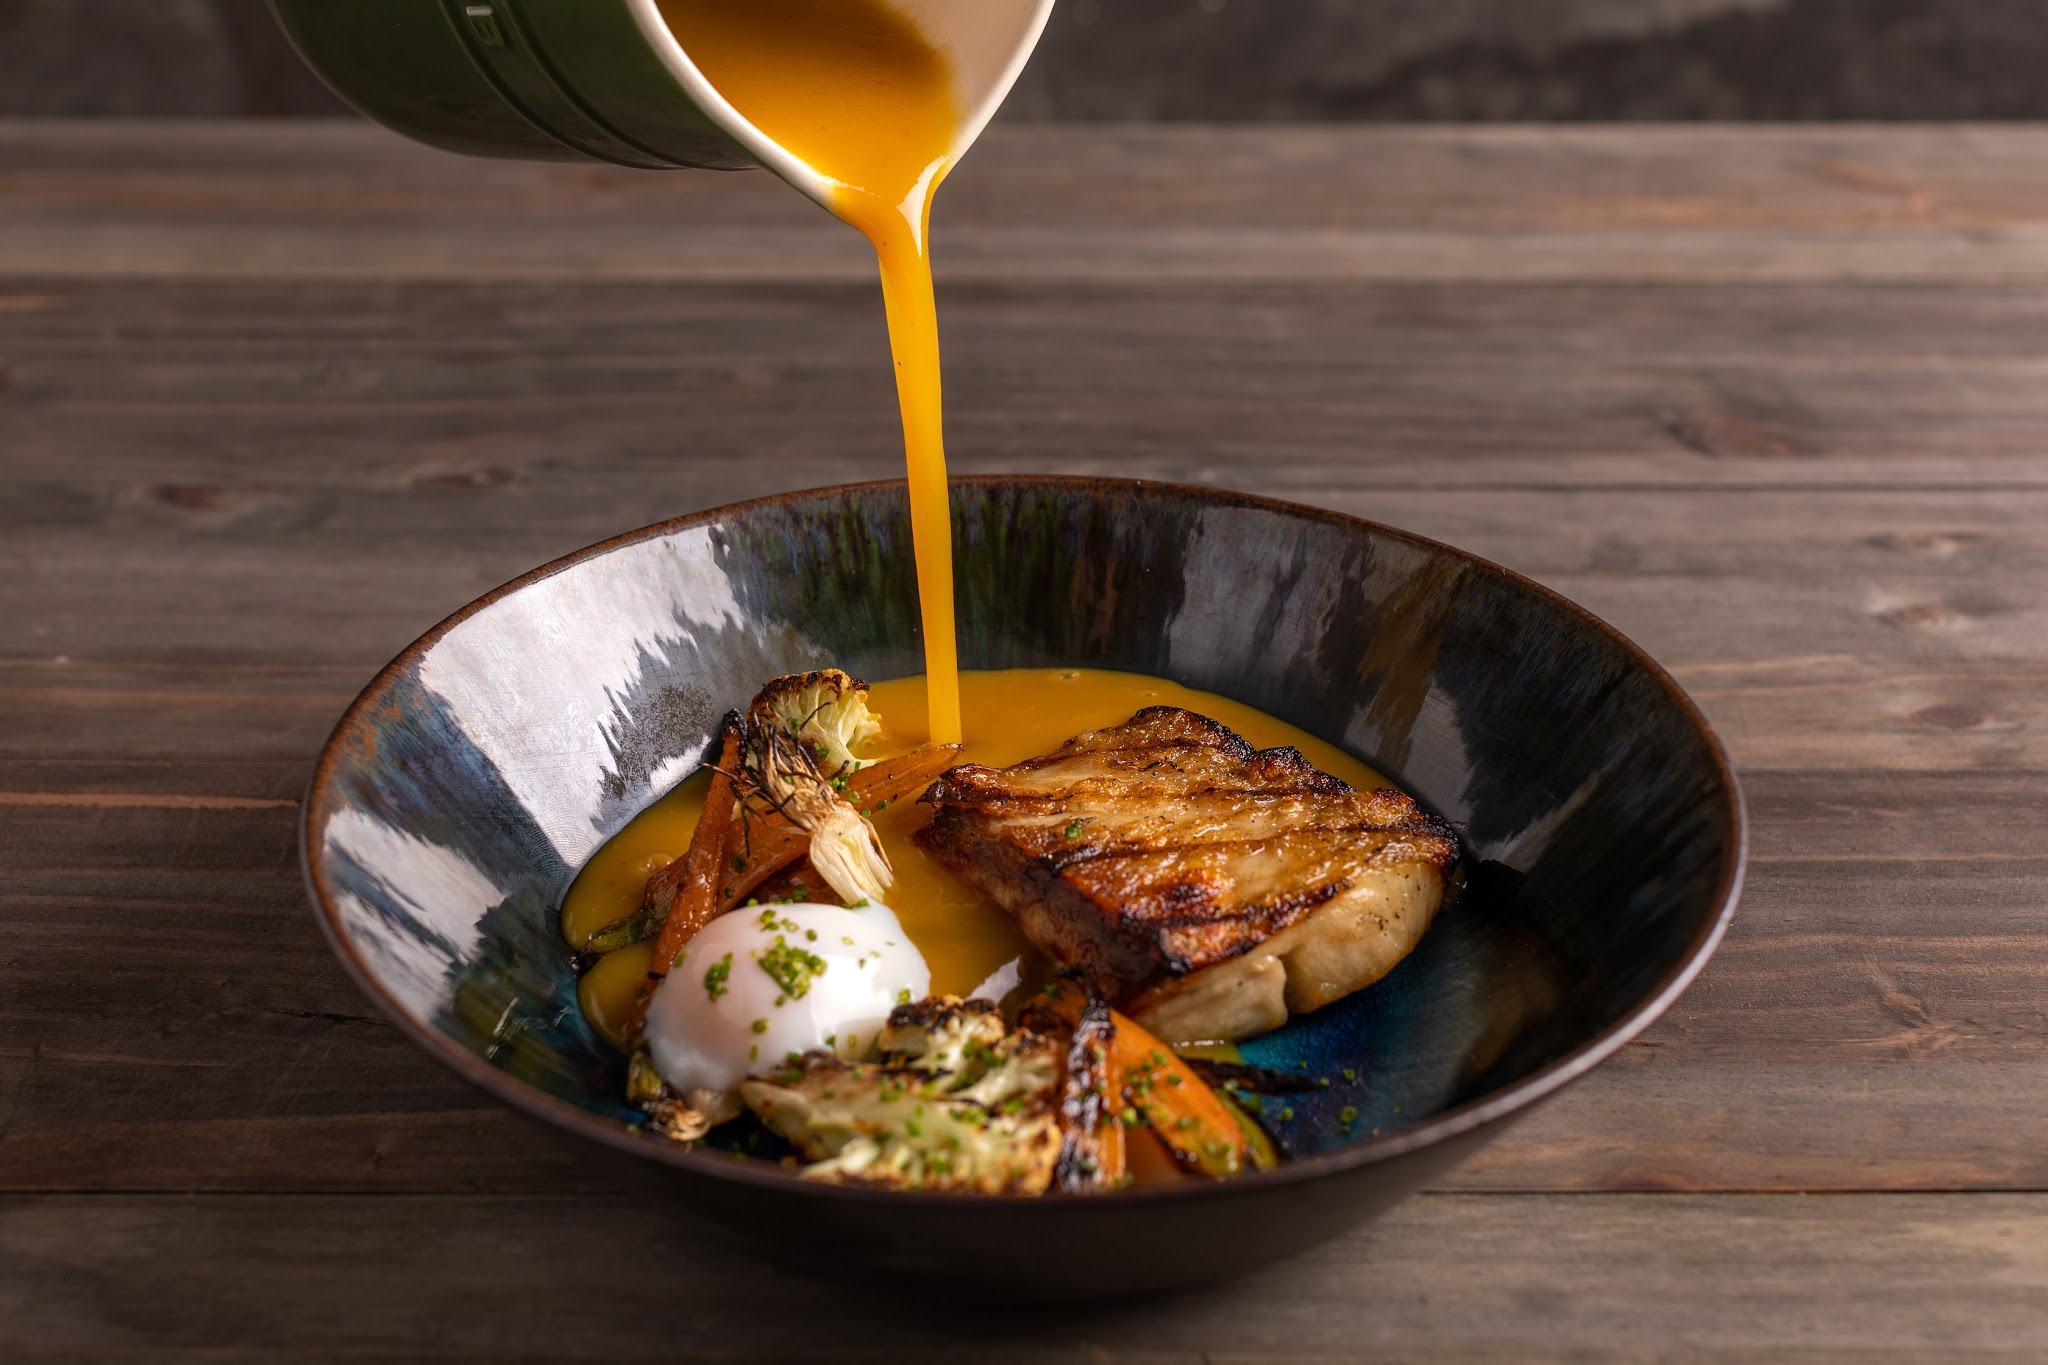 An unseen server pours broth from a serving pitcher into a bowl of tambaqui fish fillet, cauliflower, carrots, and a poached egg. The glazed bowl sits on a dark wooden table.